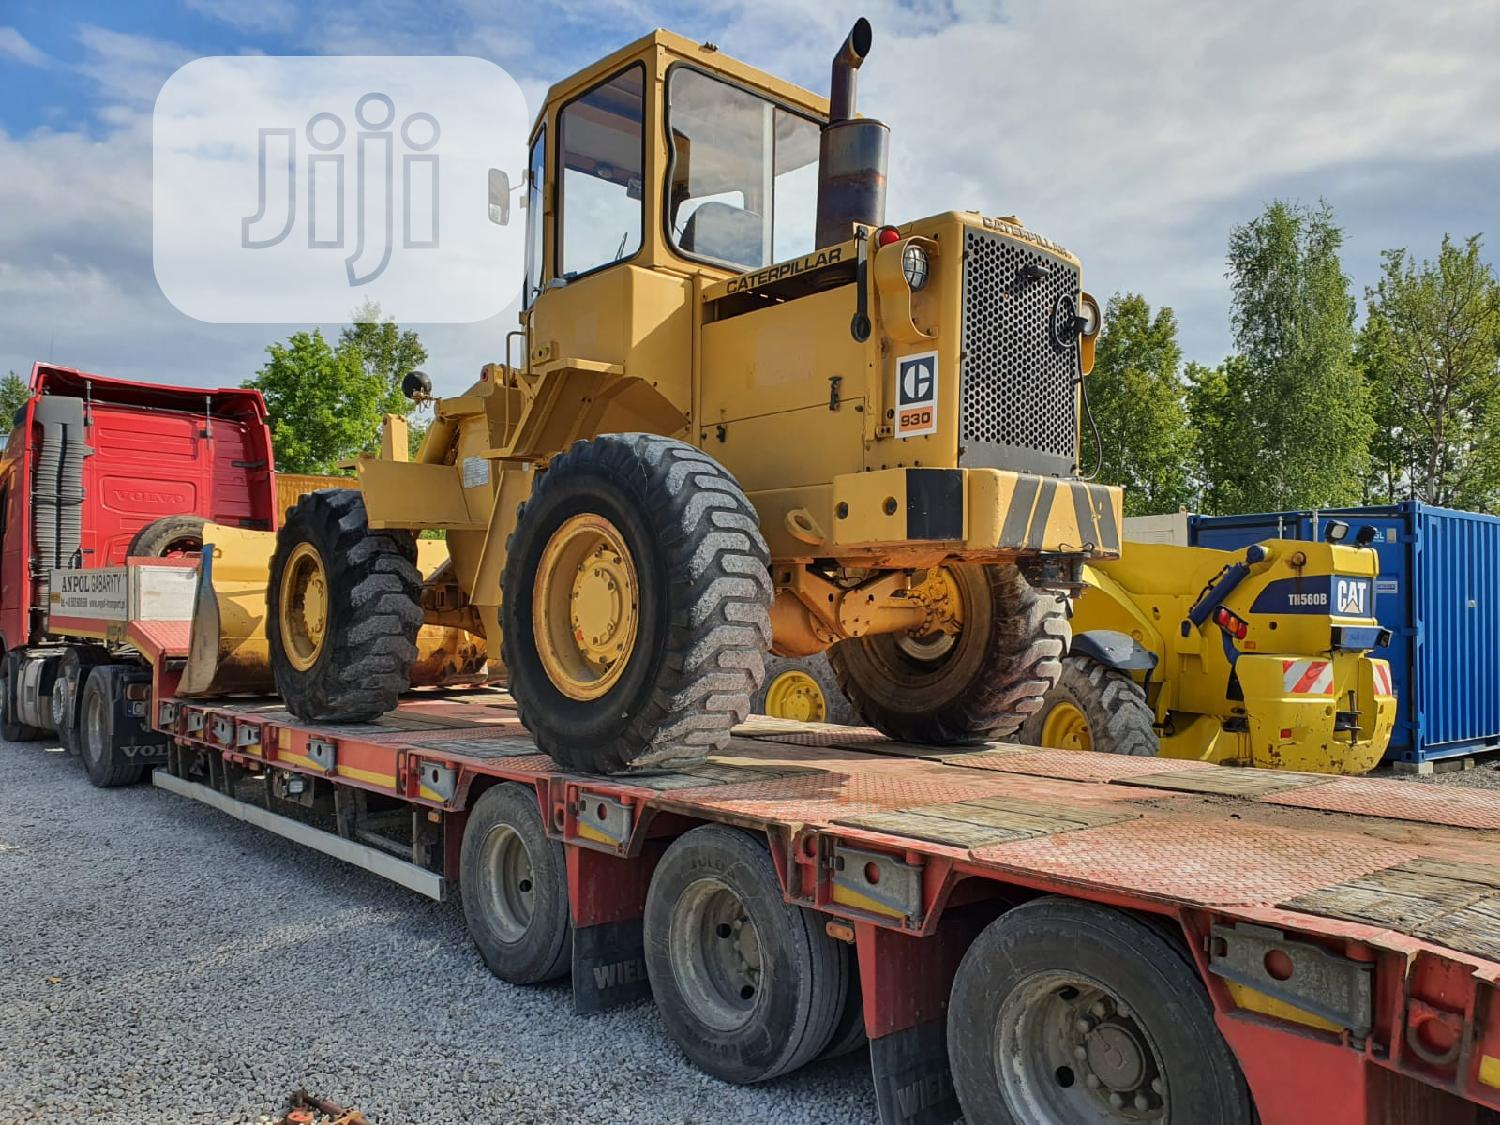 Newly Imported Payloader (CAT930) For Hire